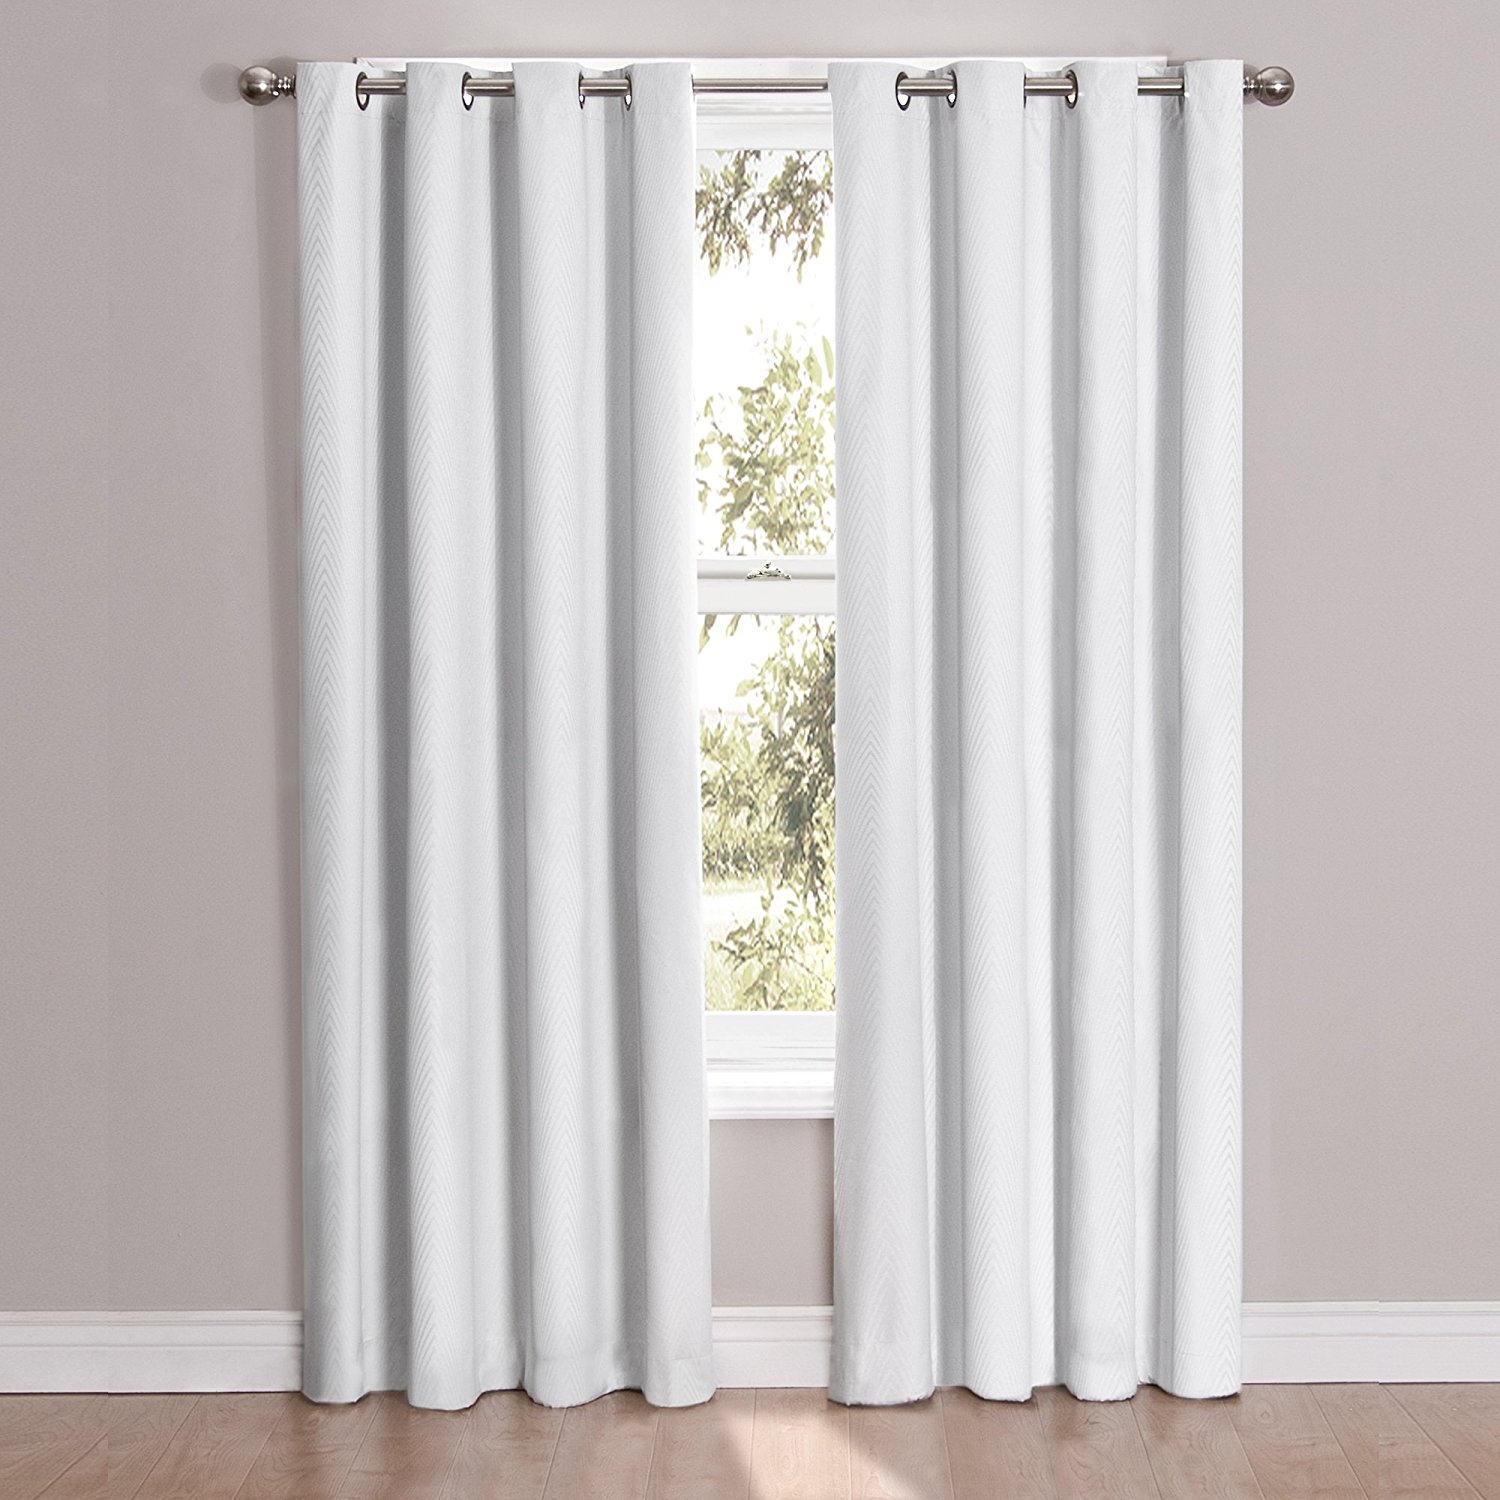 Featured Image of Plain White Blackout Curtains